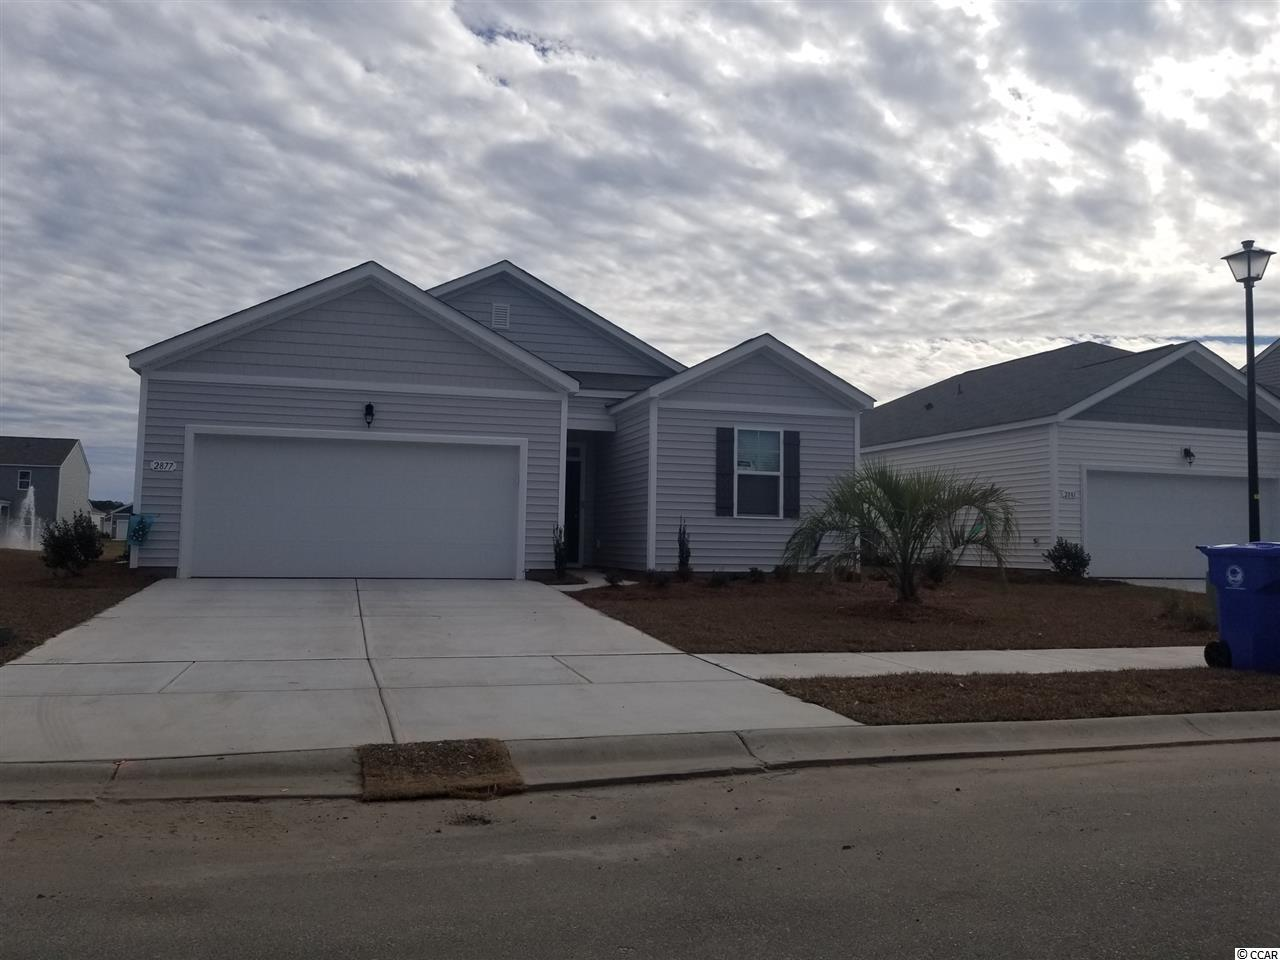 This adorable open-concept 1-level plan will be completed SEPTEMBER 2018! Enjoy a large family room, private owner's suite, and 2-car garage. Kitchen features Espresso staggered cabinets with crown molding, granite counter tops, stainless steel appliances. Beautiful solid surface wood look floors through out the home with carpet in the bedroom. Be the first to live in Meridian at Market Common. The Meridian will offer 200-300 new homes, featuring 10 floor plans both ranch and two story homes. We are the price-leader for single family homes in Market Common! Our home owners will enjoy a gracious pool, open air amenity center, pickle ball court, walking trails and a short golf cart ride to the beach. Live like you're on vacation! Photos of home are of a model home of same floor plan in another community and are for presentation only.